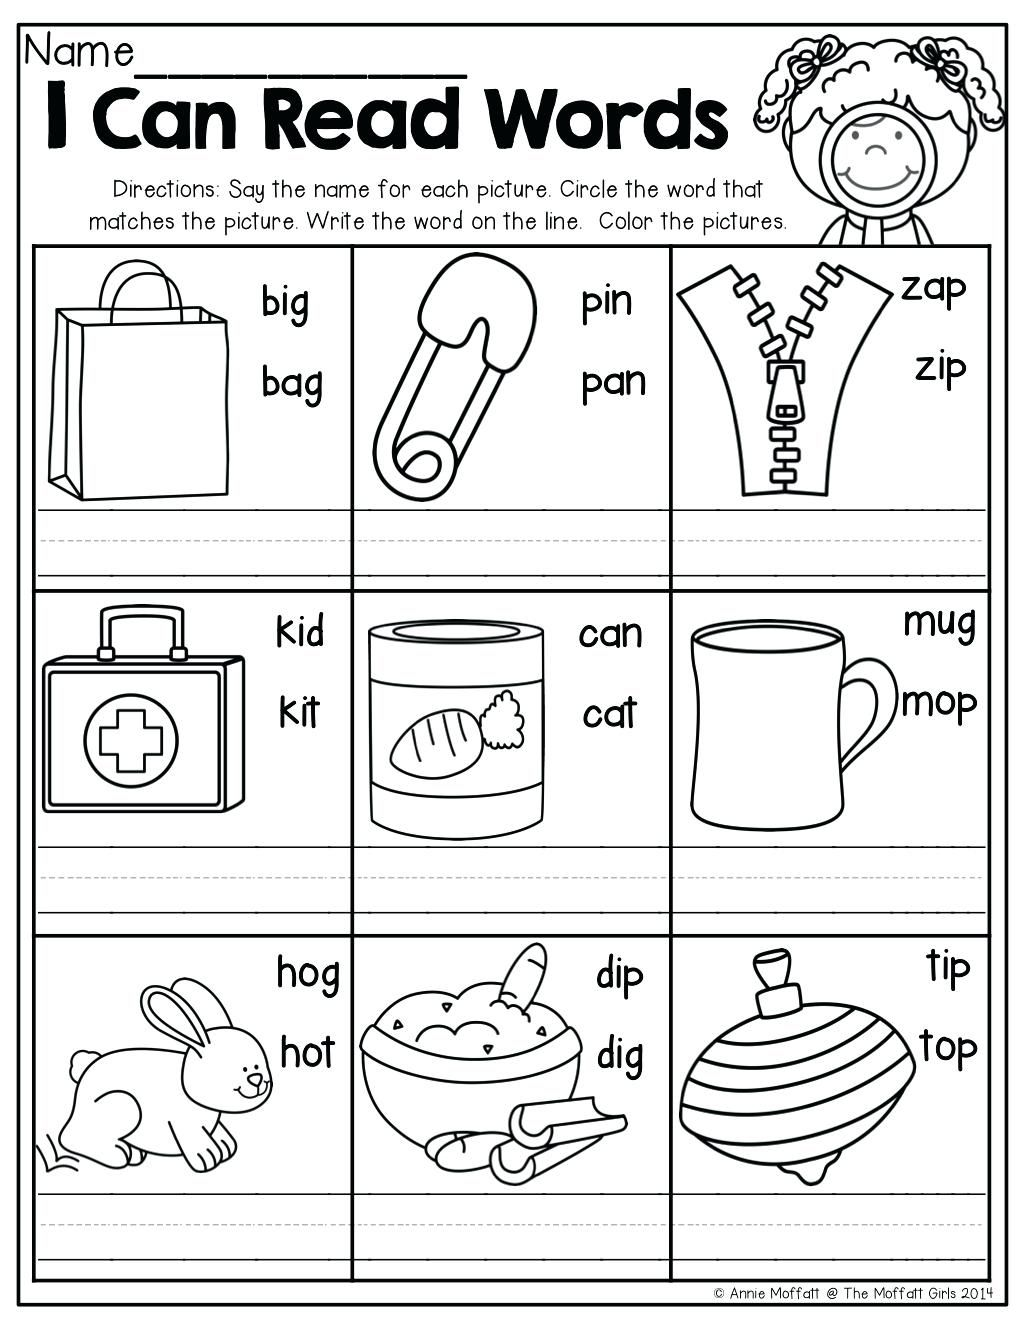 Abc Worksheets For Preschool For Printable To Abc